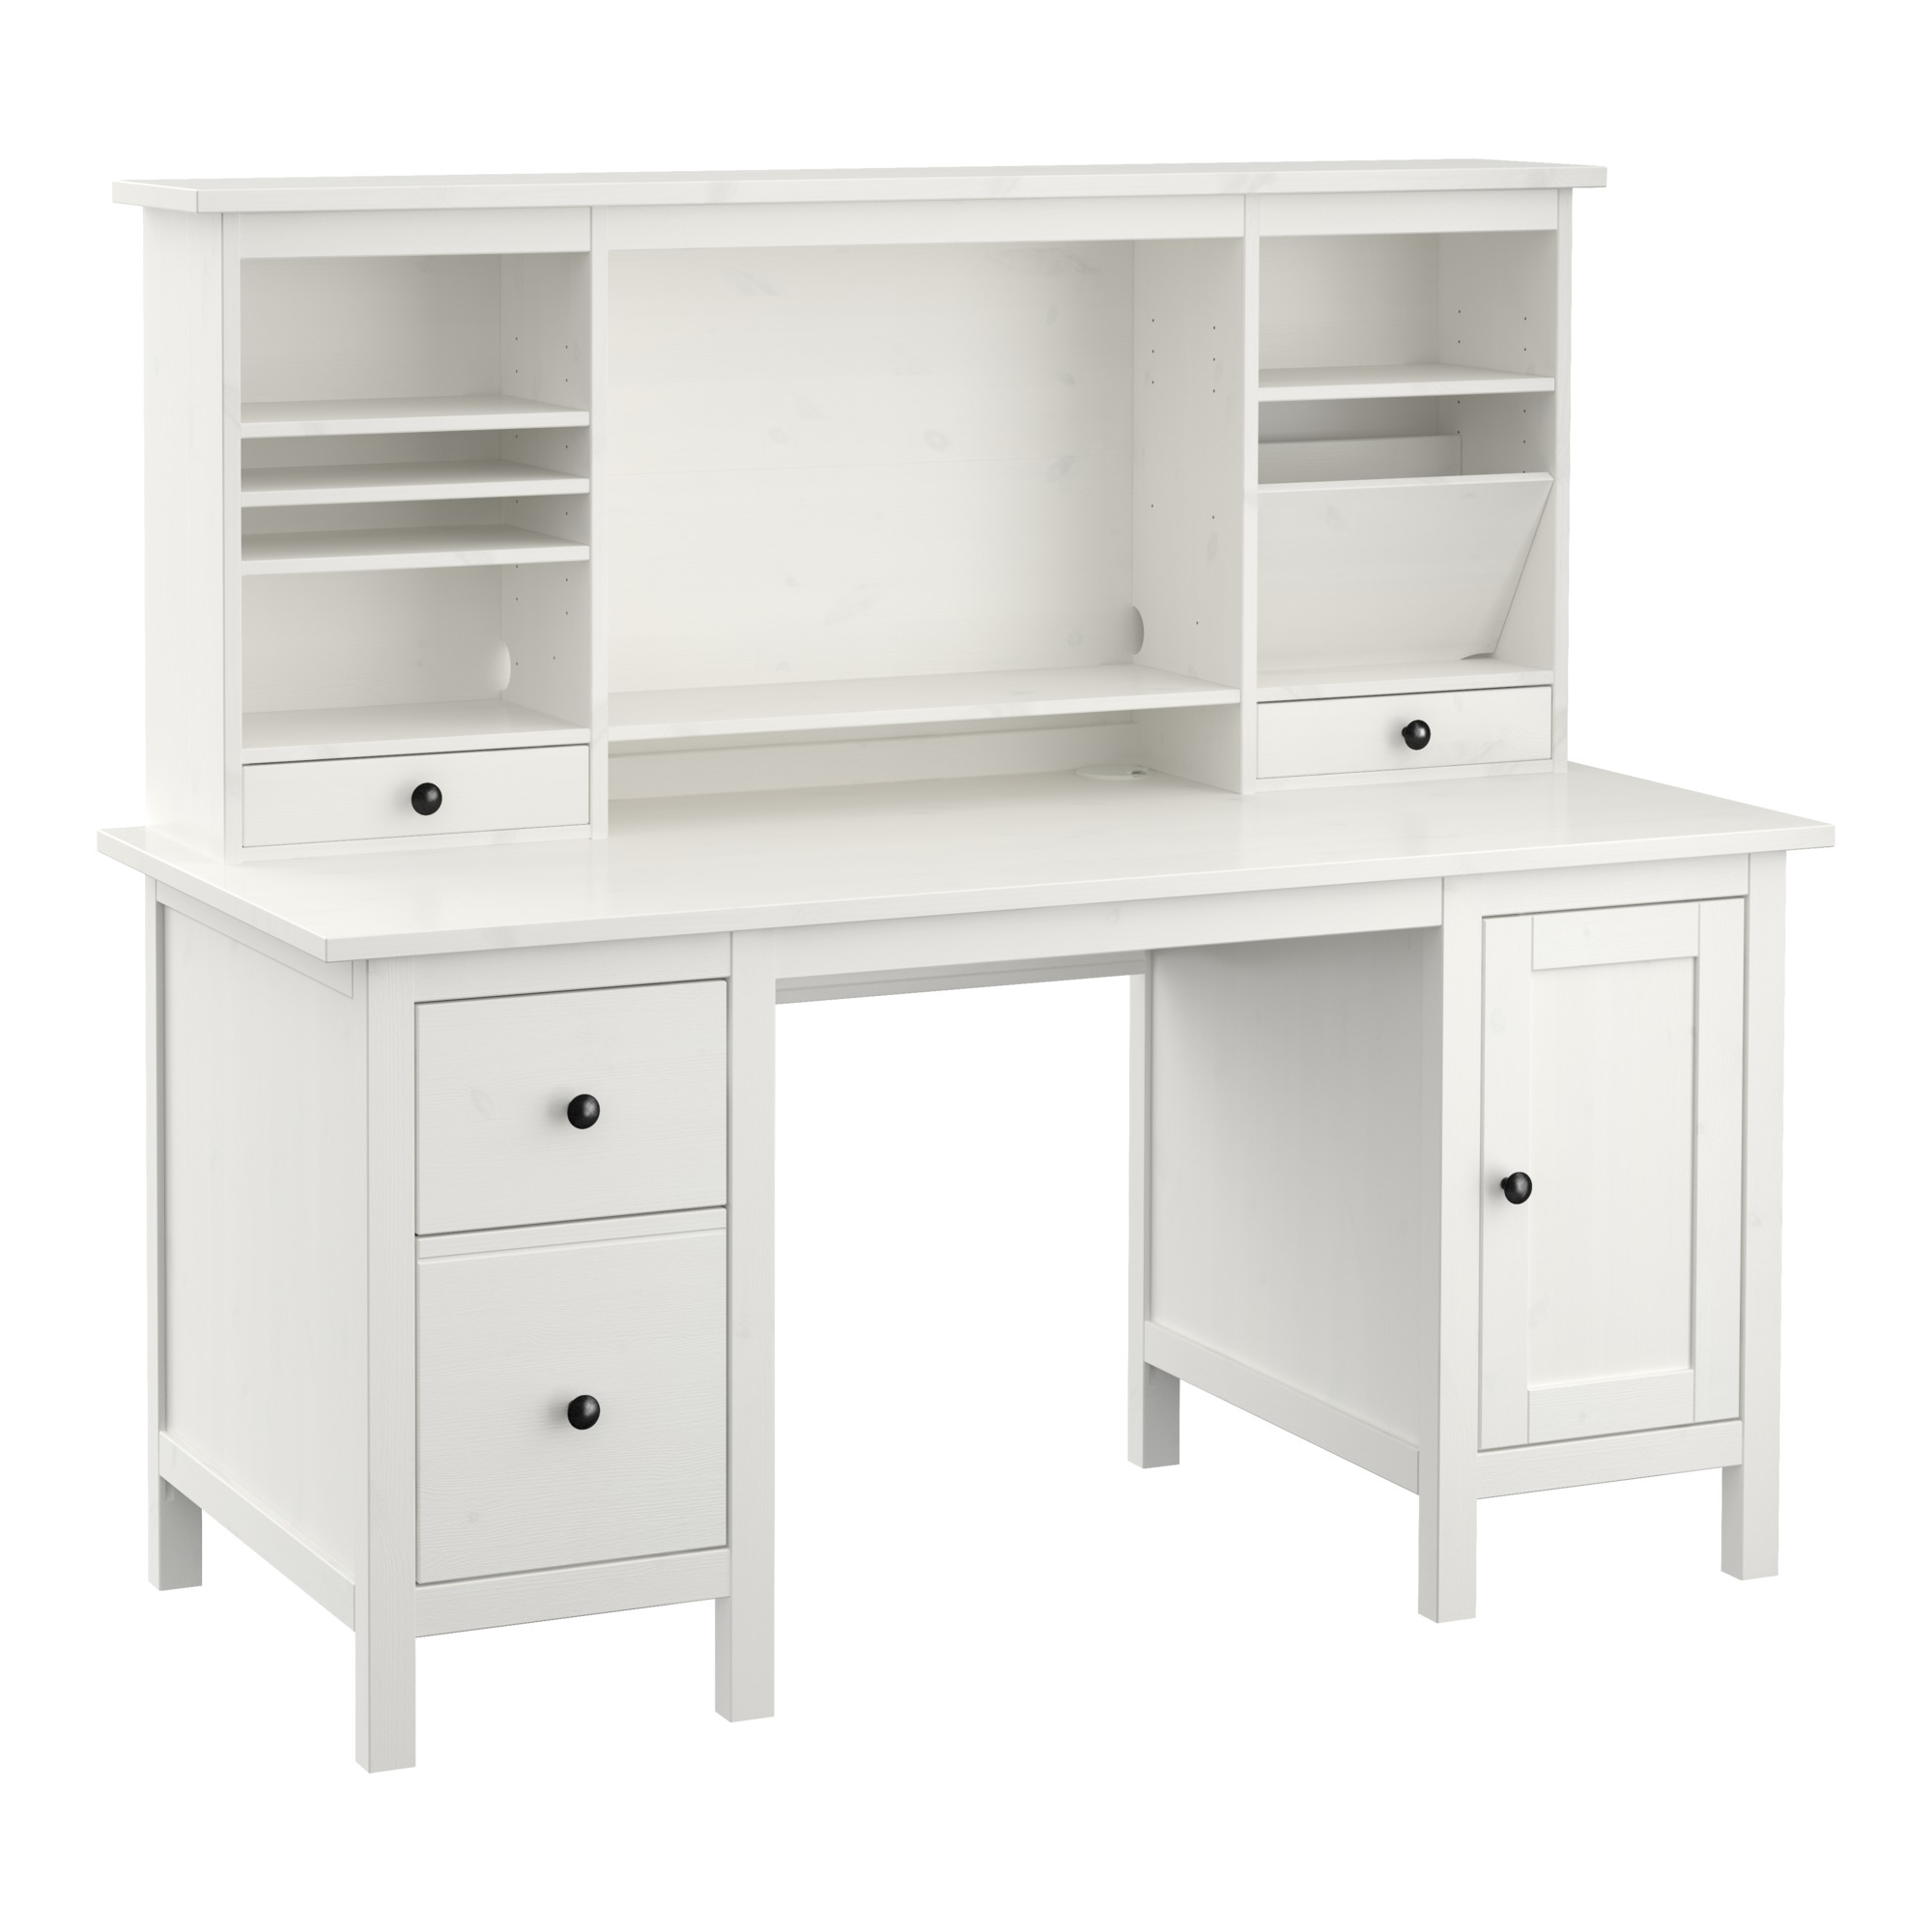 Preferred Ikea Mn Computer Desks Pertaining To Hemnes Desk With Add On Unit – White Stain – Ikea (View 15 of 20)